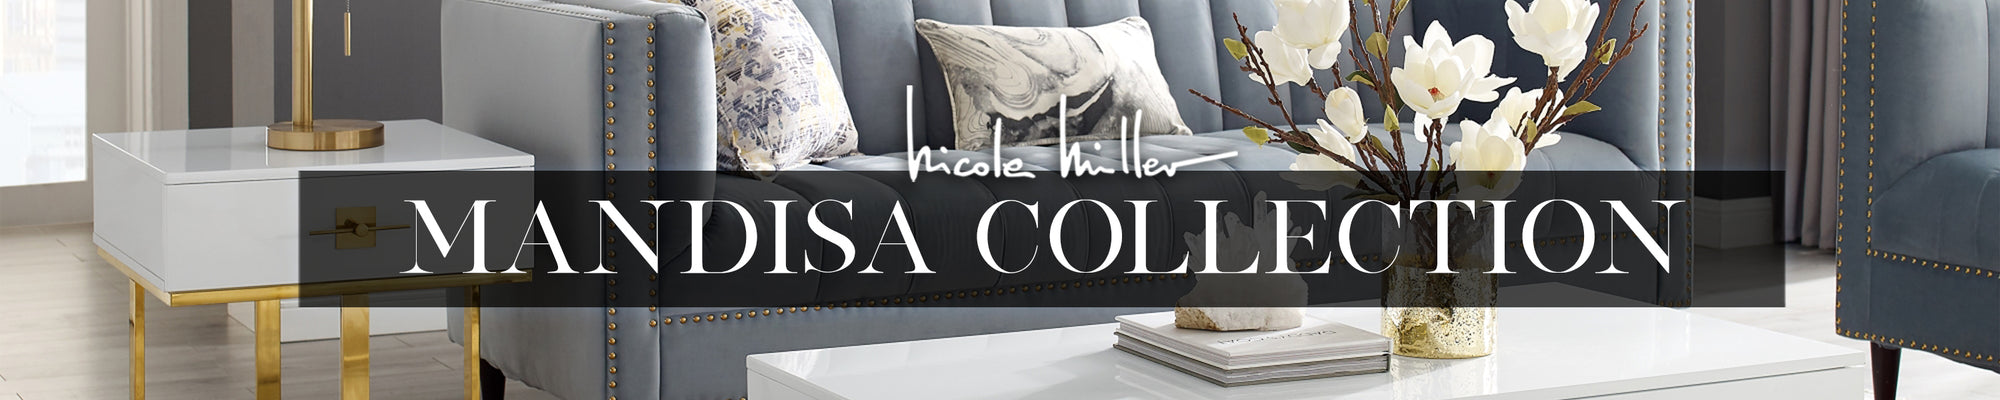 Mandisa Collection - Nicole Miller